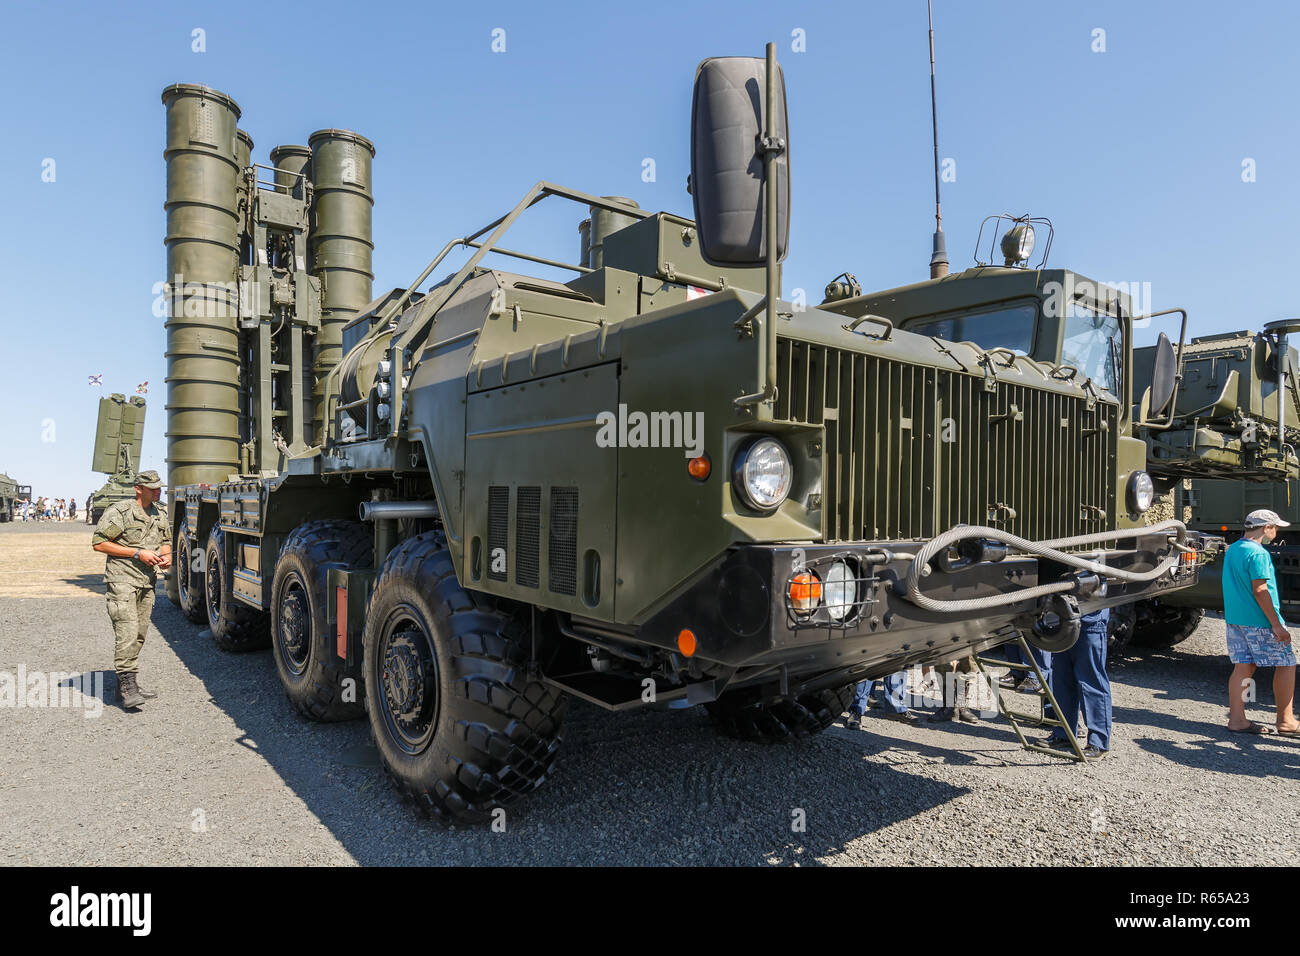 International military technical forum 'ARMY-2018». Russian anti-aircraft missile system S-400 «Triumph». Left side view - Stock Image